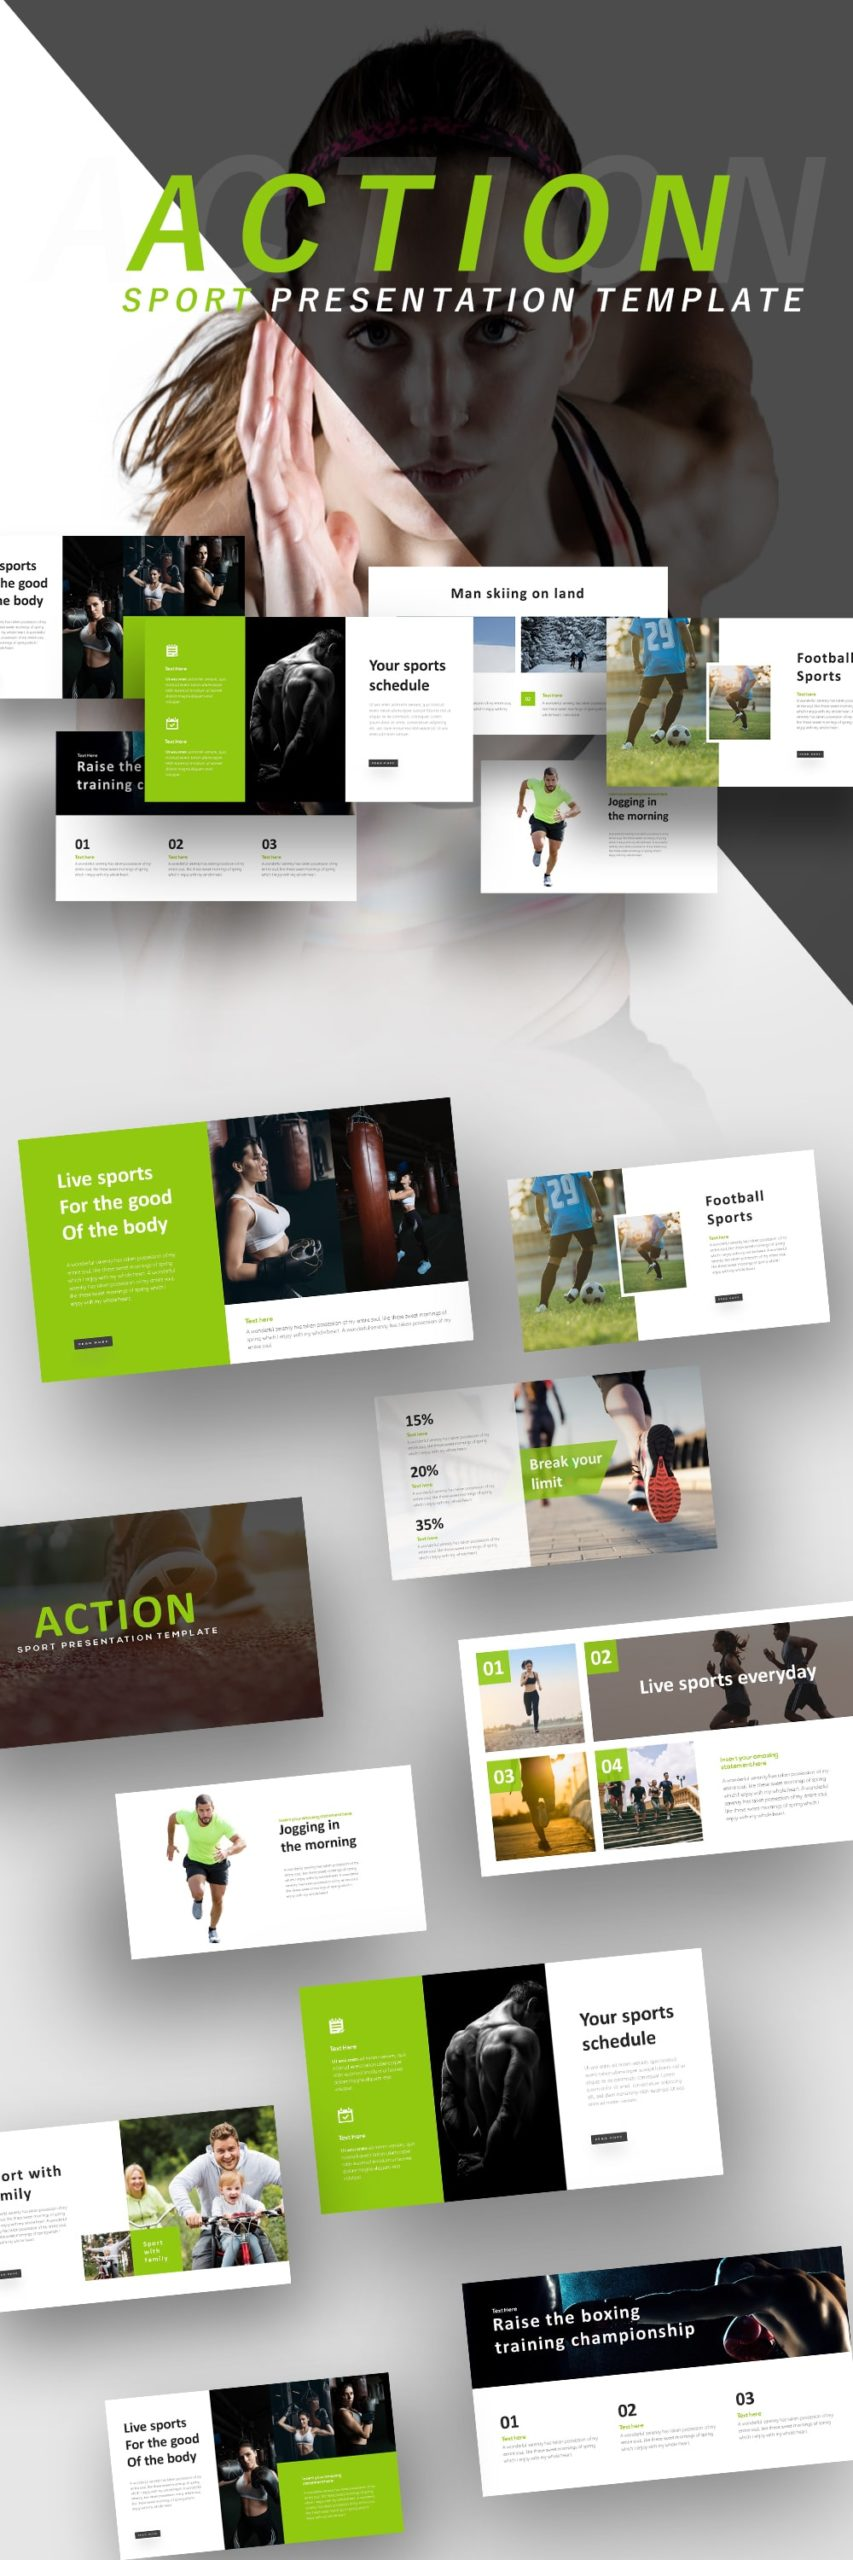 Free Action Sports PowerPoint